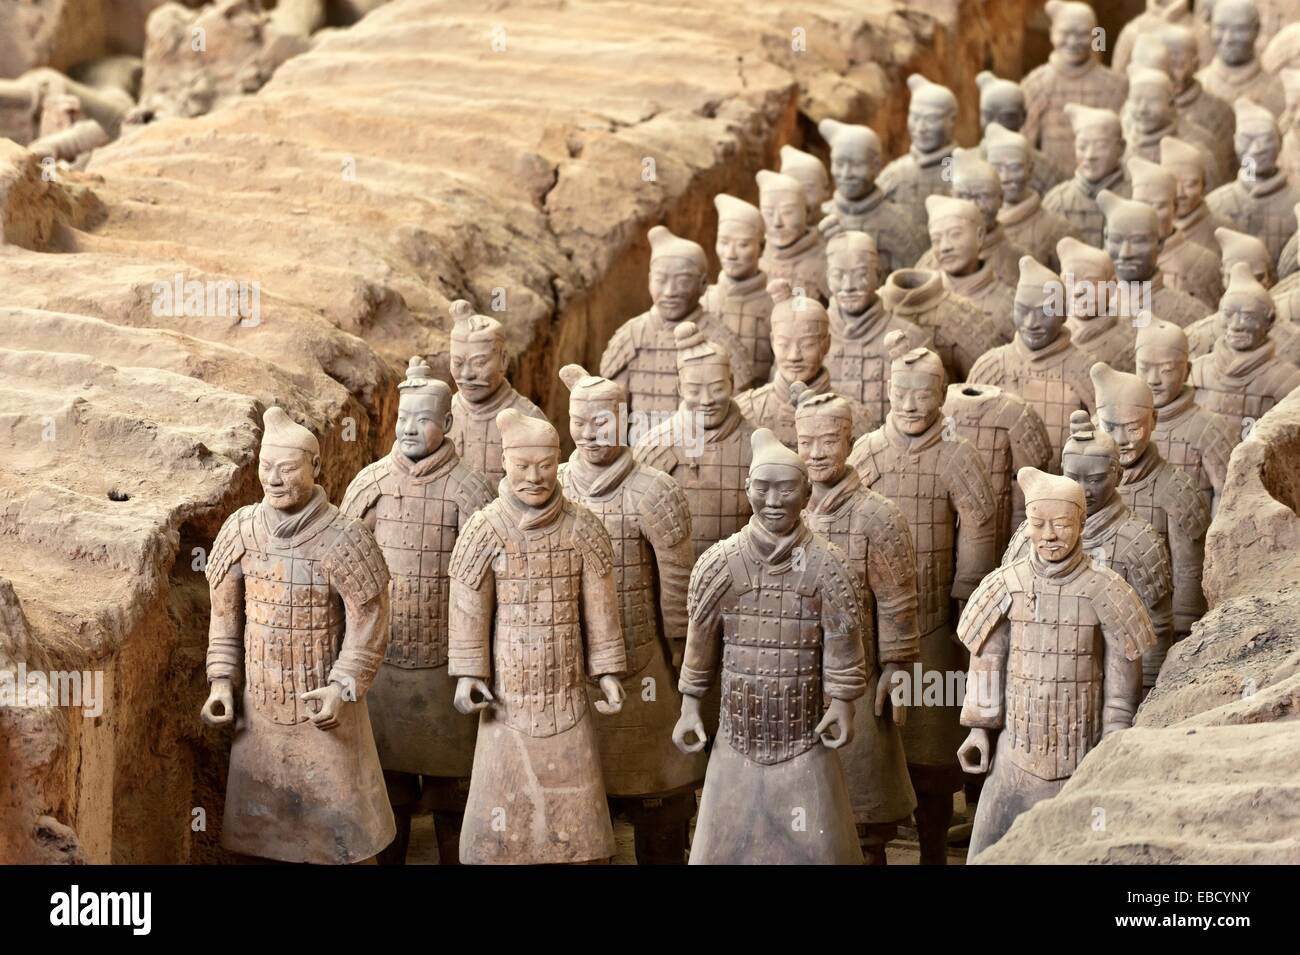 an introduction to the history of qin shi huangdi Qin shi huang by gabby krieble introduction many names: qin shi huang, qin shi huangdi, qin shi huang-di, qin shi huangti, qin shi huang-ti, ying zheng, and first.